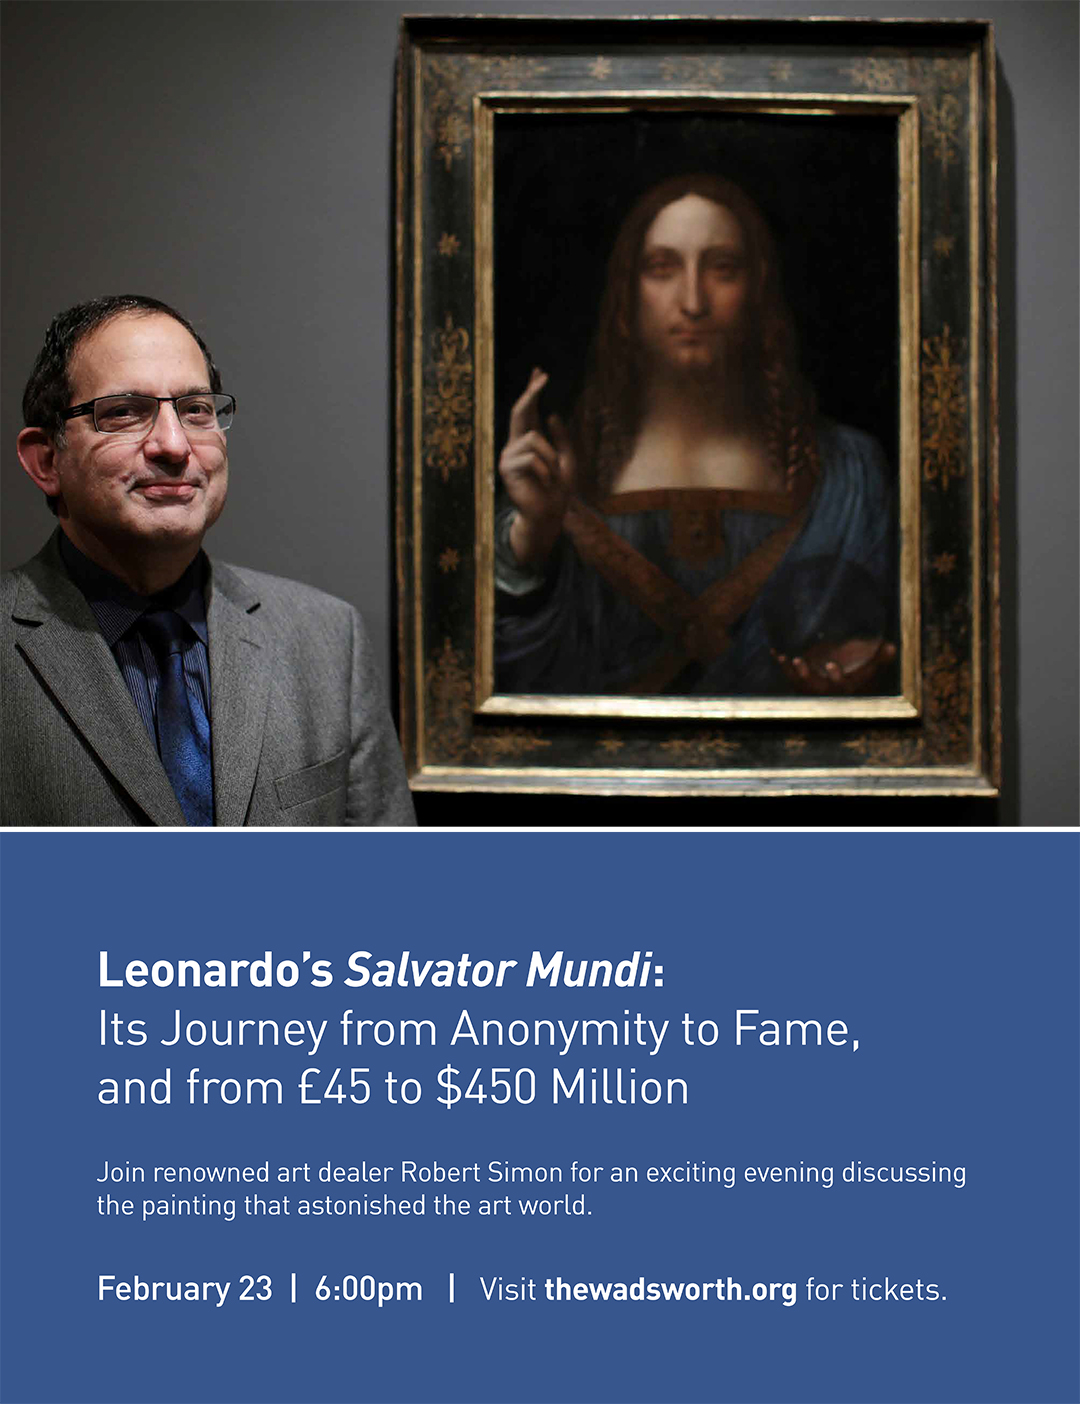 Leonardo's Salvator Mundi: Its Journey from Anonymity to Fame, and from £ 40 to $450 Million  Join renowned art dealer Robert Simon for an exciting evening discussing the painting that astonished the art world.  February 23 | 6:00PM | Visit thewadsworth.org for tickets.